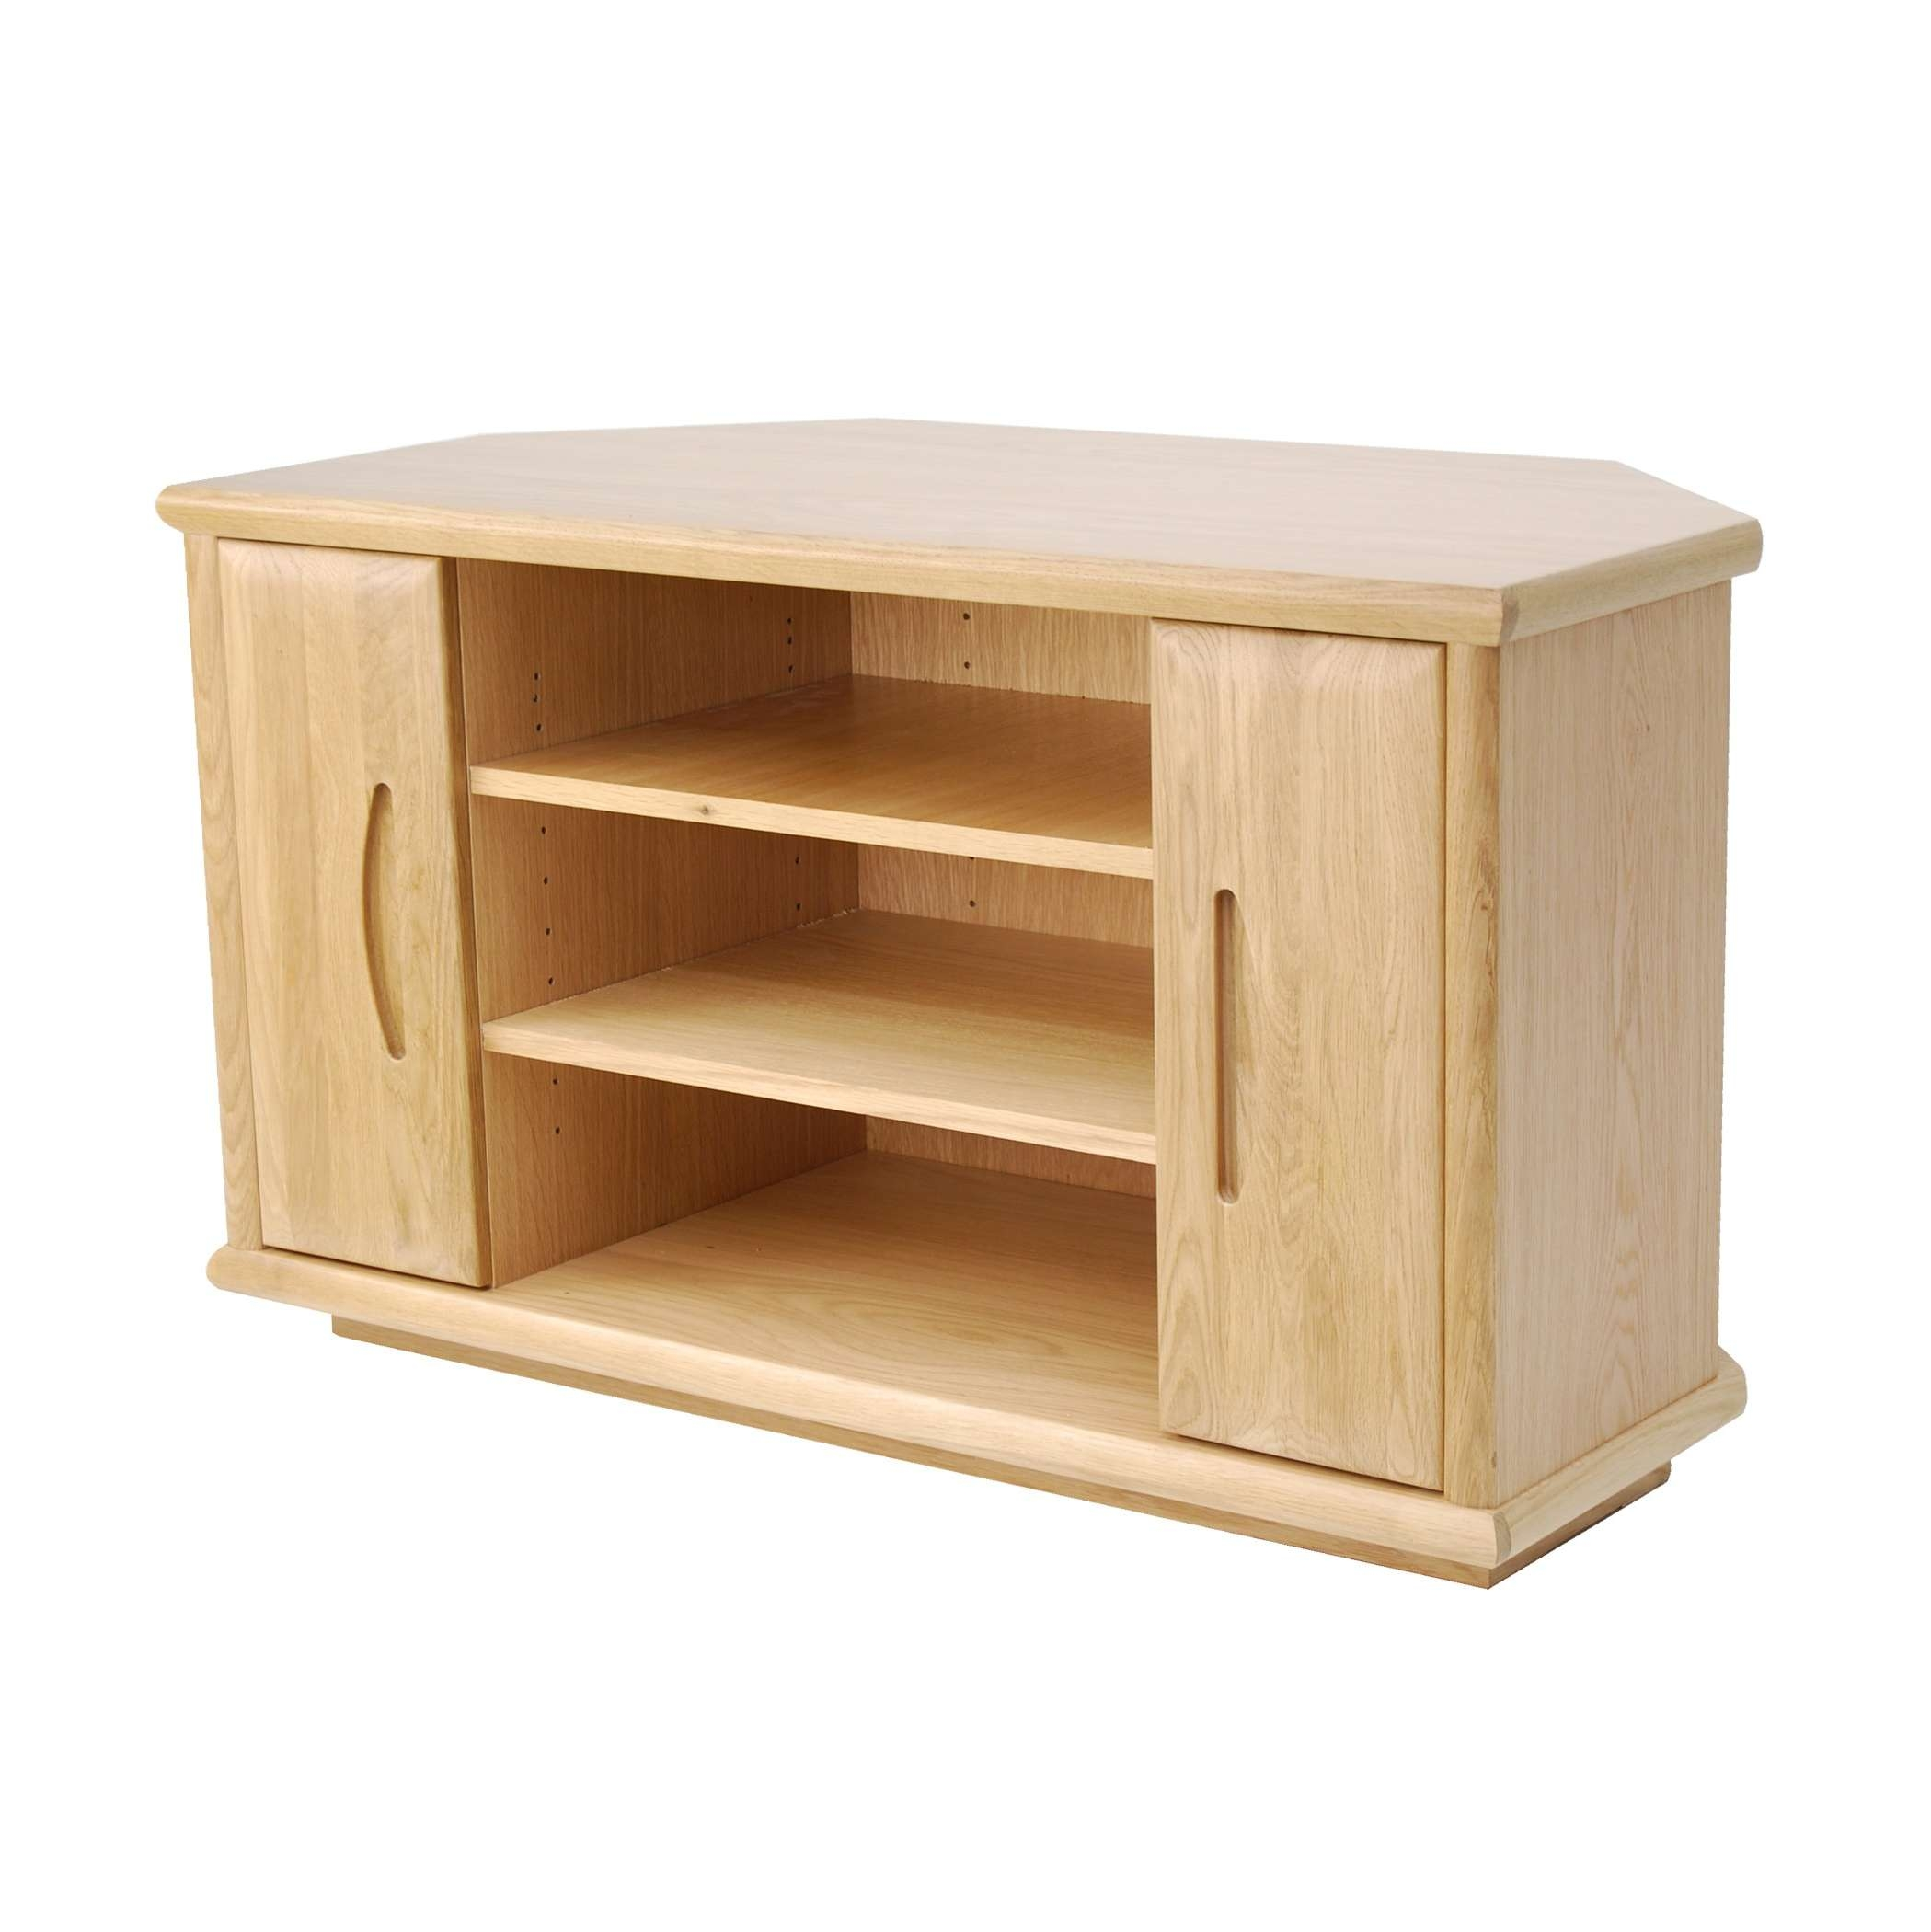 Oak Corner Tv Stand | Gola Furniture Uk With Regard To Small Oak Corner Tv Stands (Gallery 3 of 15)